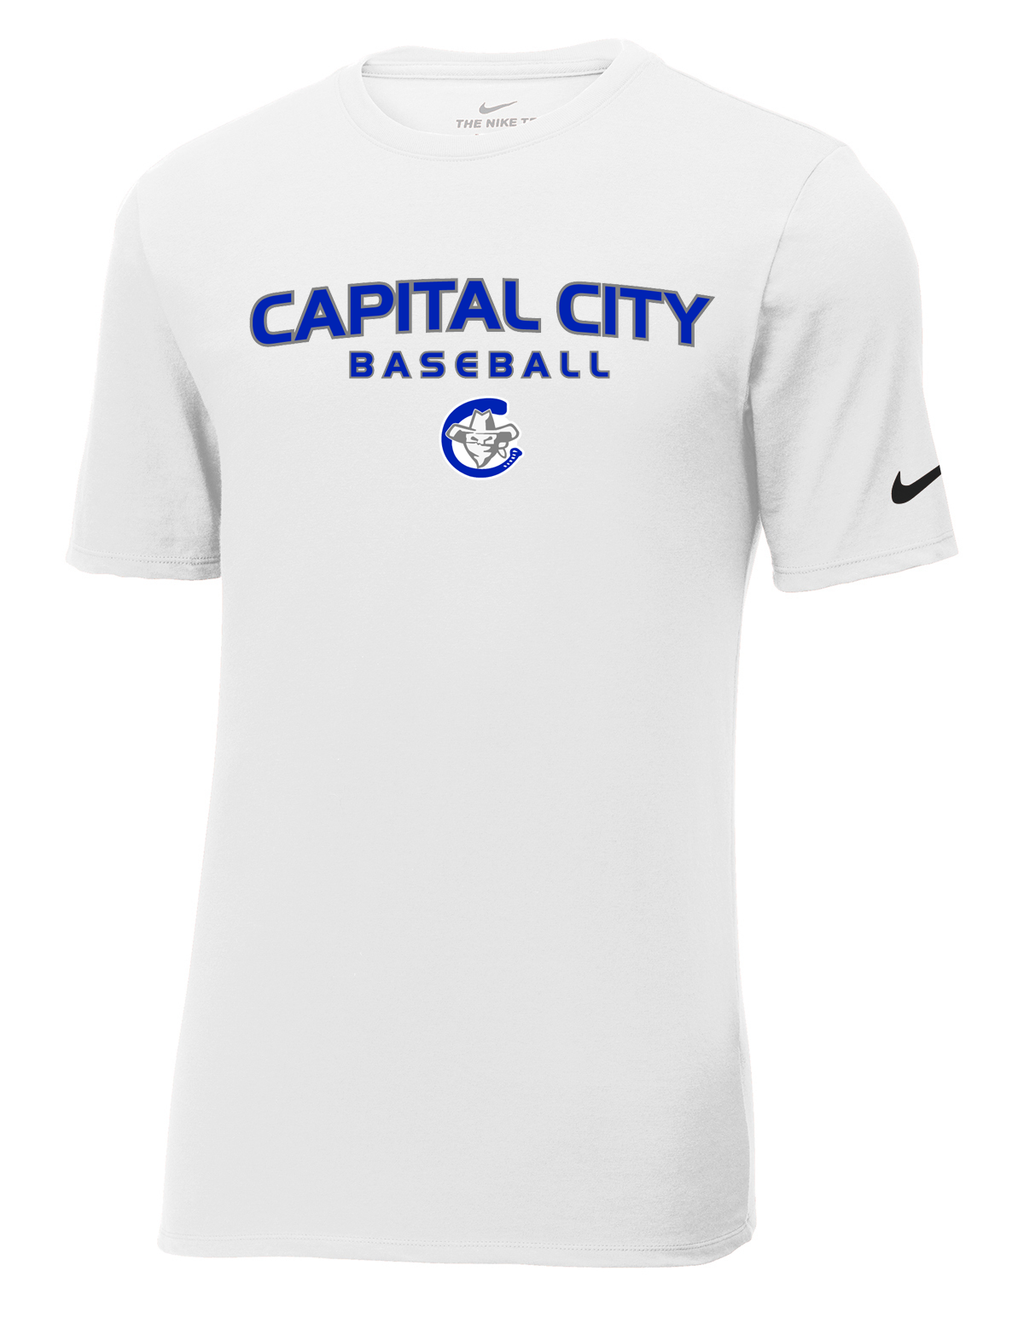 Capital City Baseball Nike Core Cotton Tee